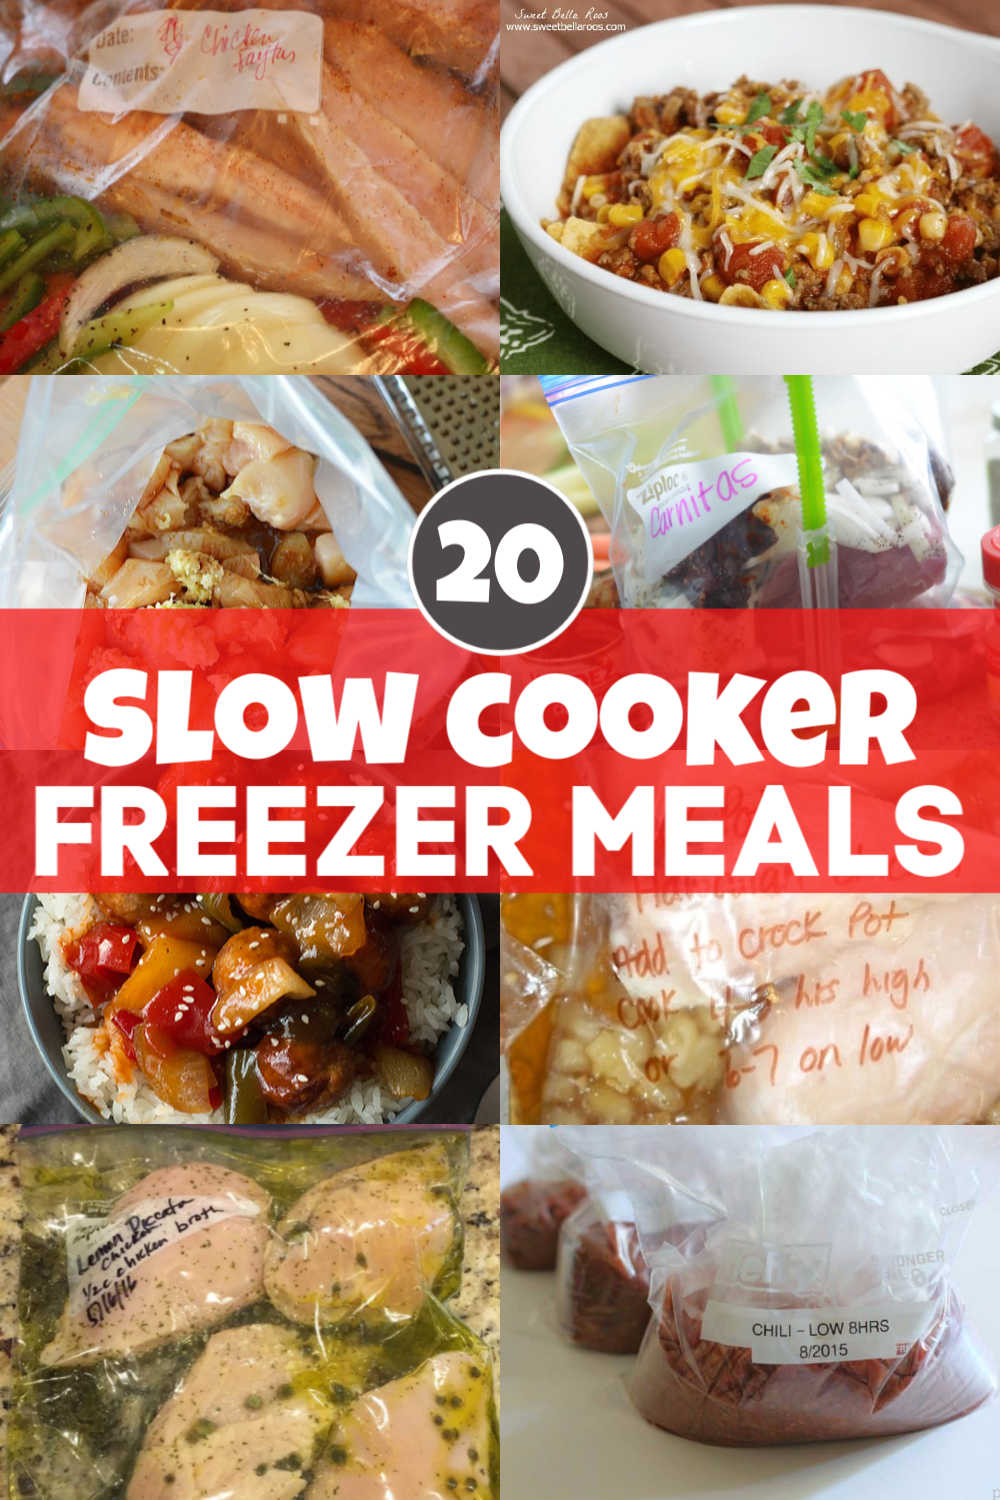 Meal Prep Madness with these 20 amazing slow cooker freezer meals. Here are the easy steps, hints and tricks to make dump and go meals for those days where you are just too busy. Literally, dump the ziplock bag of frozen ingredients into the crock pot and go! It can\'t get easier than this! #crockpot #freezermeals #slowcooker #mealprep